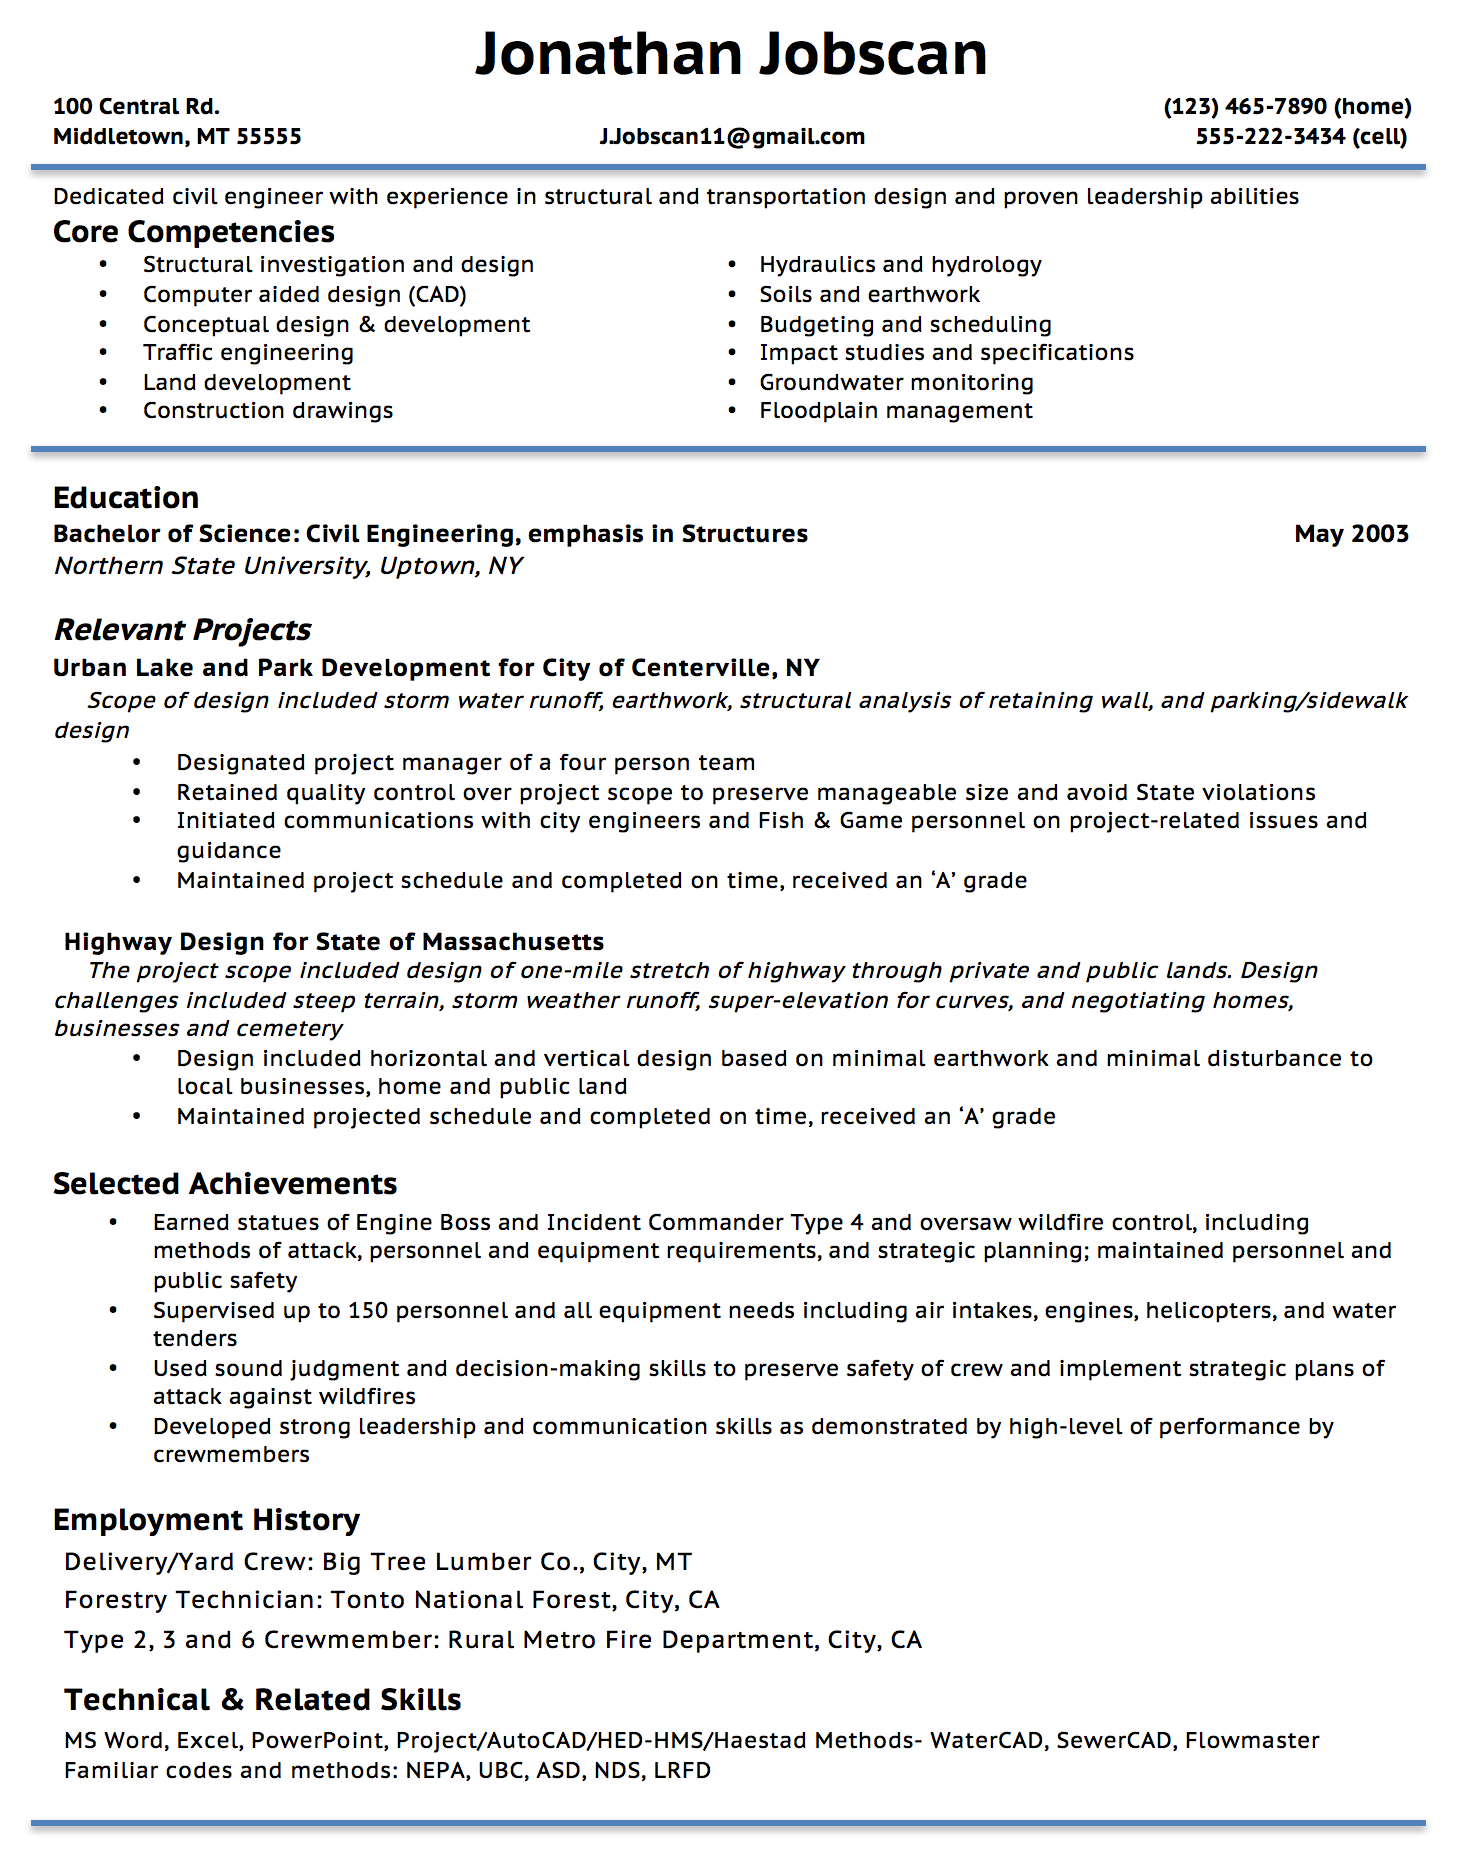 Opposenewapstandardsus  Terrific Resume Writing Guide  Jobscan With Exquisite Example Of A Functional Resume Format With Beautiful Business Resume Examples Also Education On A Resume In Addition Nursing Skills For Resume And First Job Resume Examples As Well As How To Write Objective In Resume Additionally How To Do A Job Resume From Jobscanco With Opposenewapstandardsus  Exquisite Resume Writing Guide  Jobscan With Beautiful Example Of A Functional Resume Format And Terrific Business Resume Examples Also Education On A Resume In Addition Nursing Skills For Resume From Jobscanco